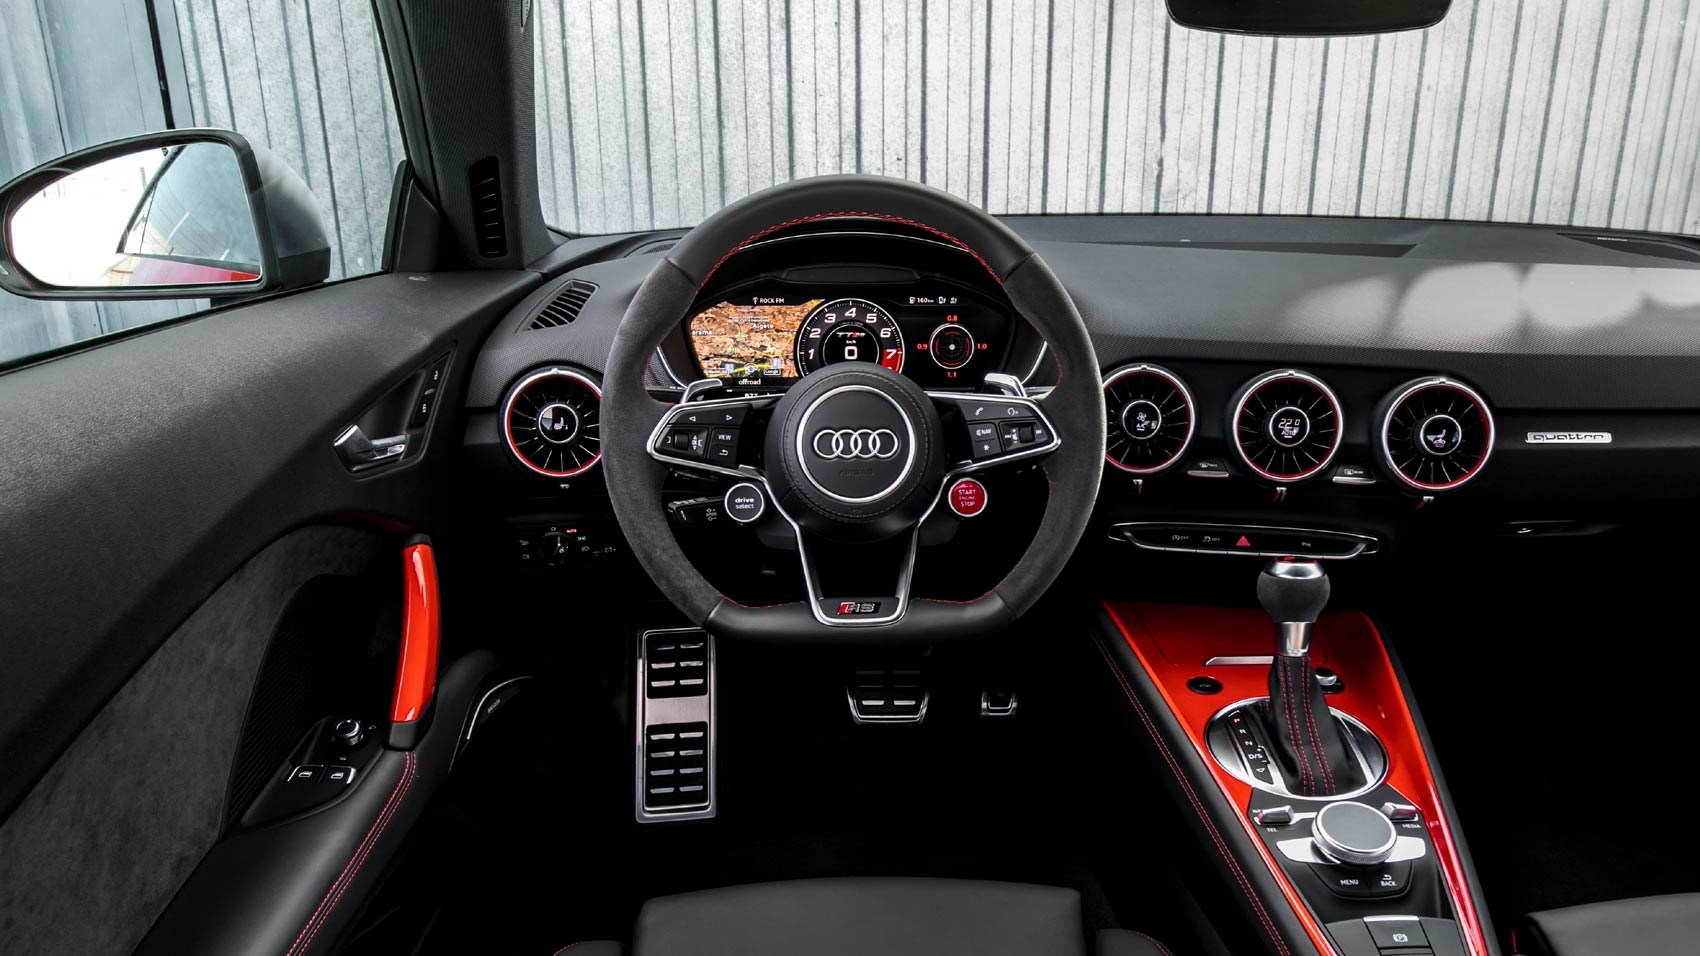 Audi Tt For Sale >> Audi TT RS Coupe (2016) review | CAR Magazine